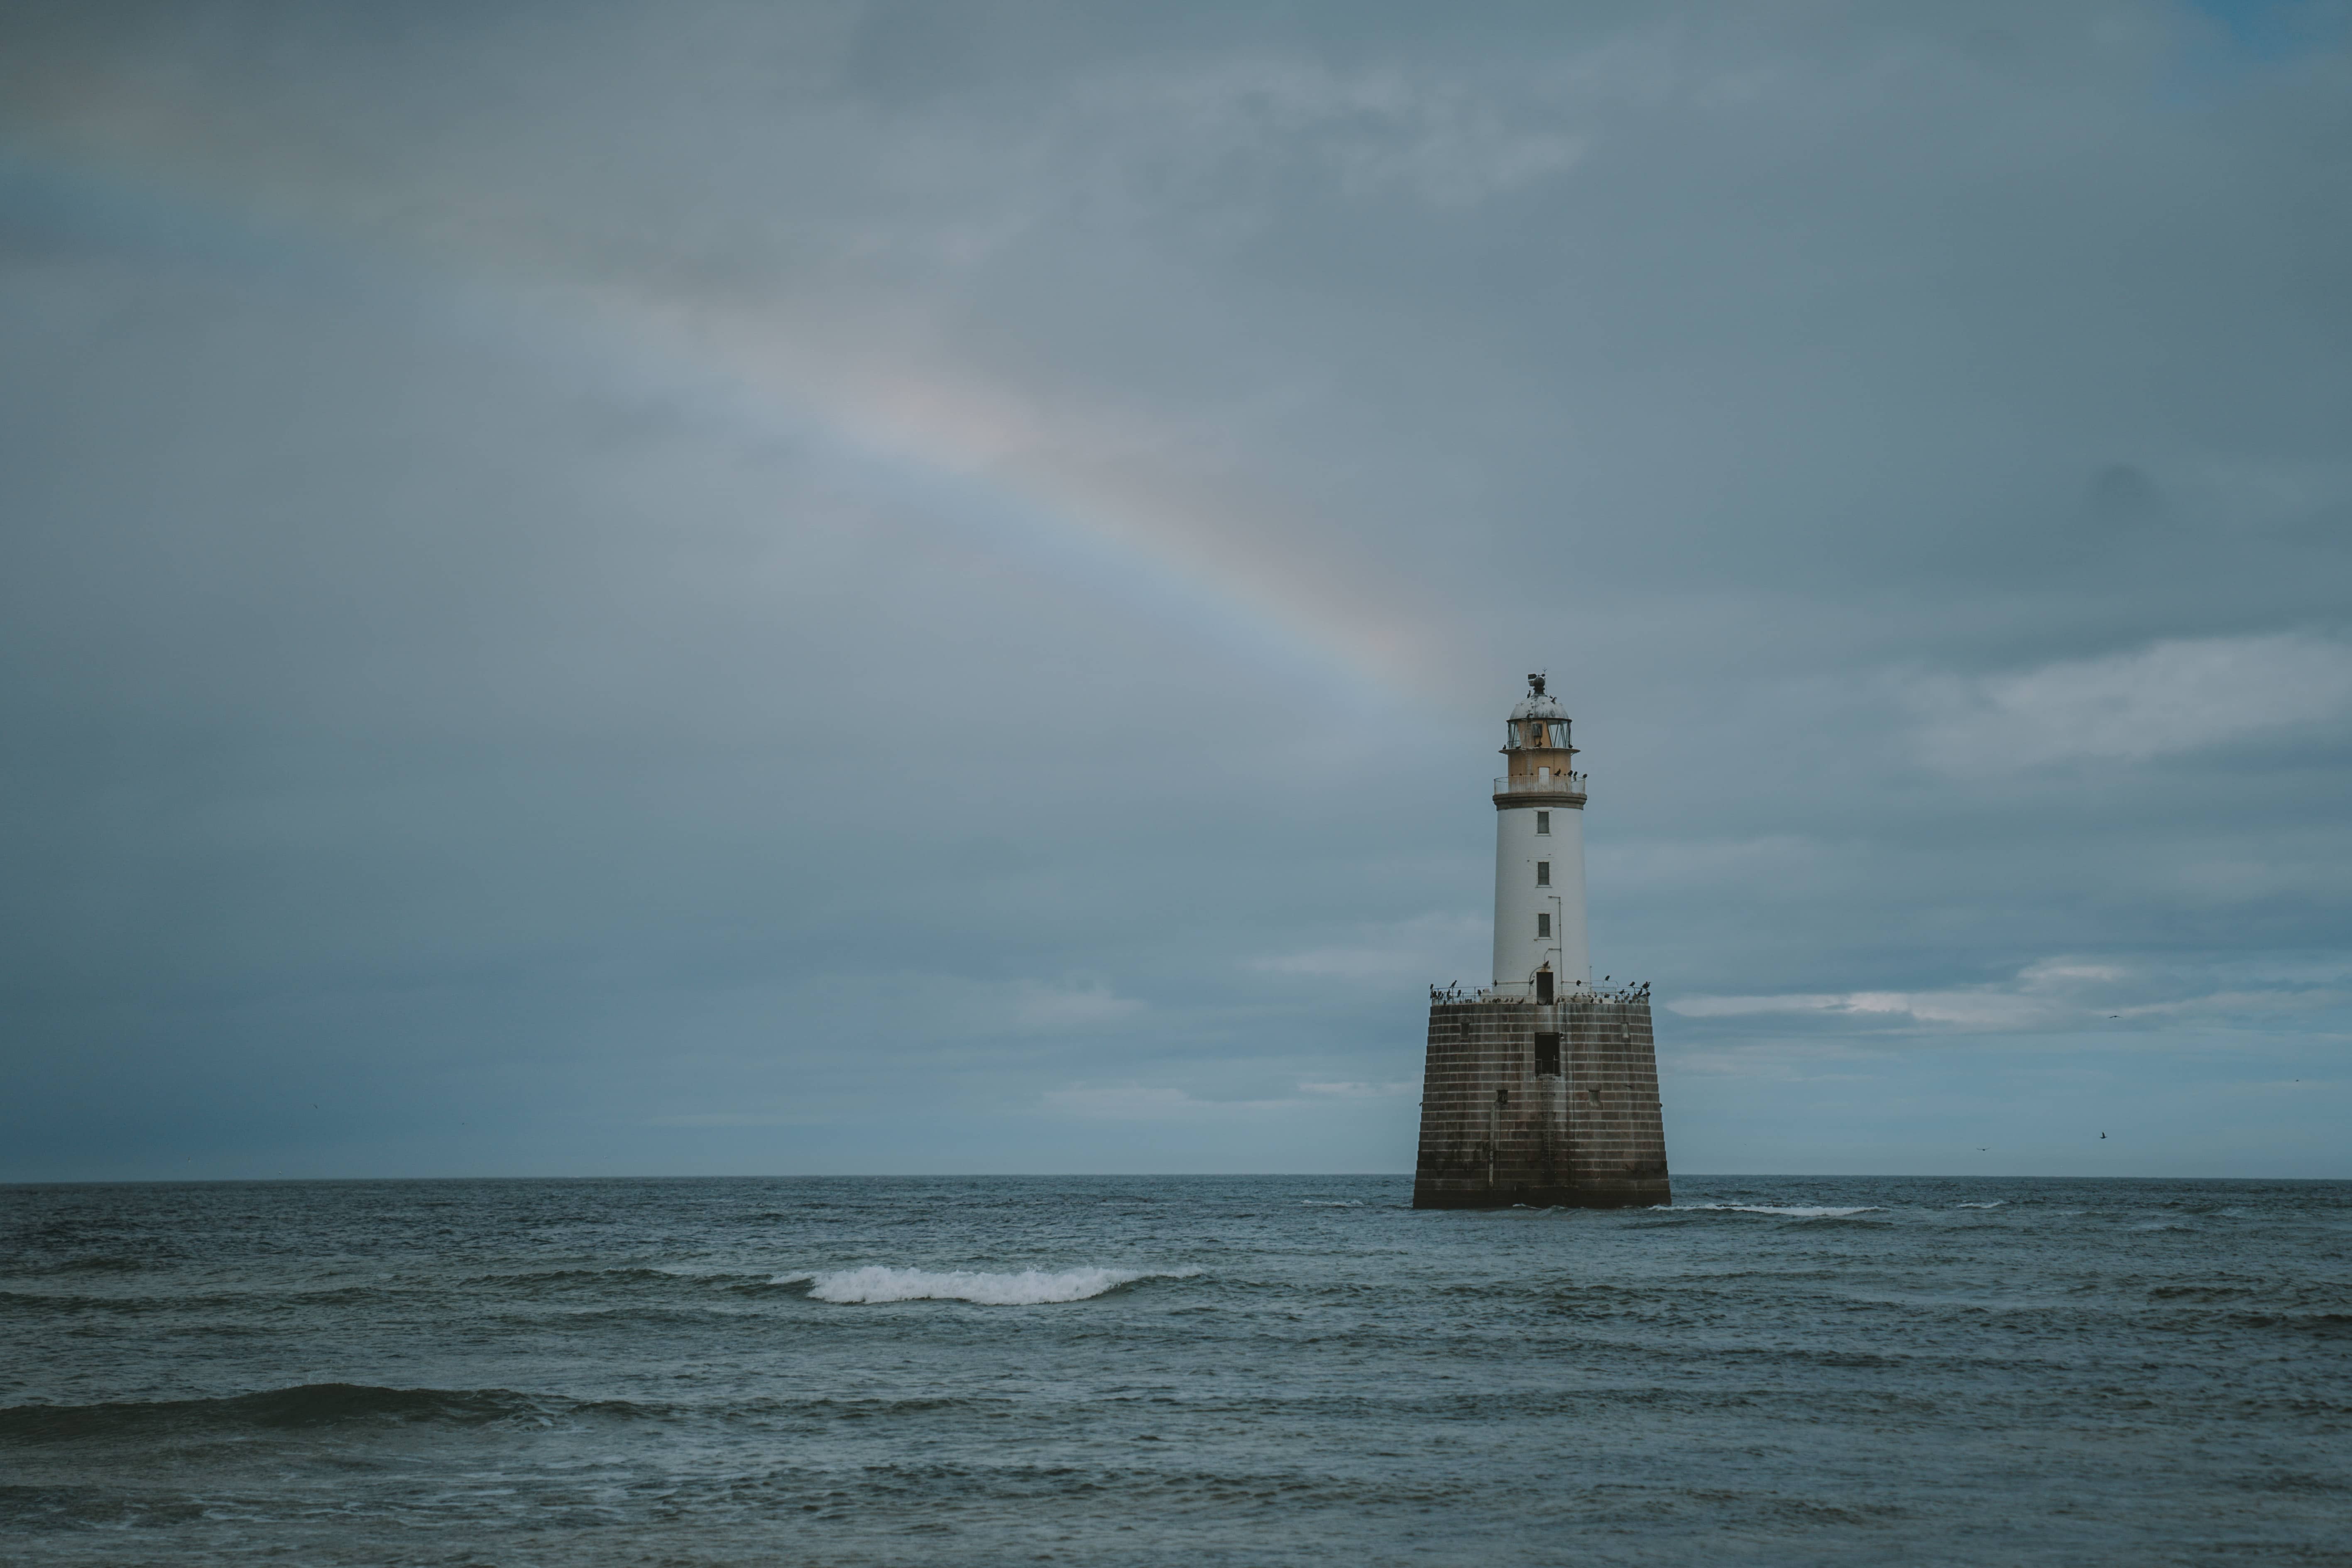 Rattray head light house in Scotland with a rainbow in the ocean